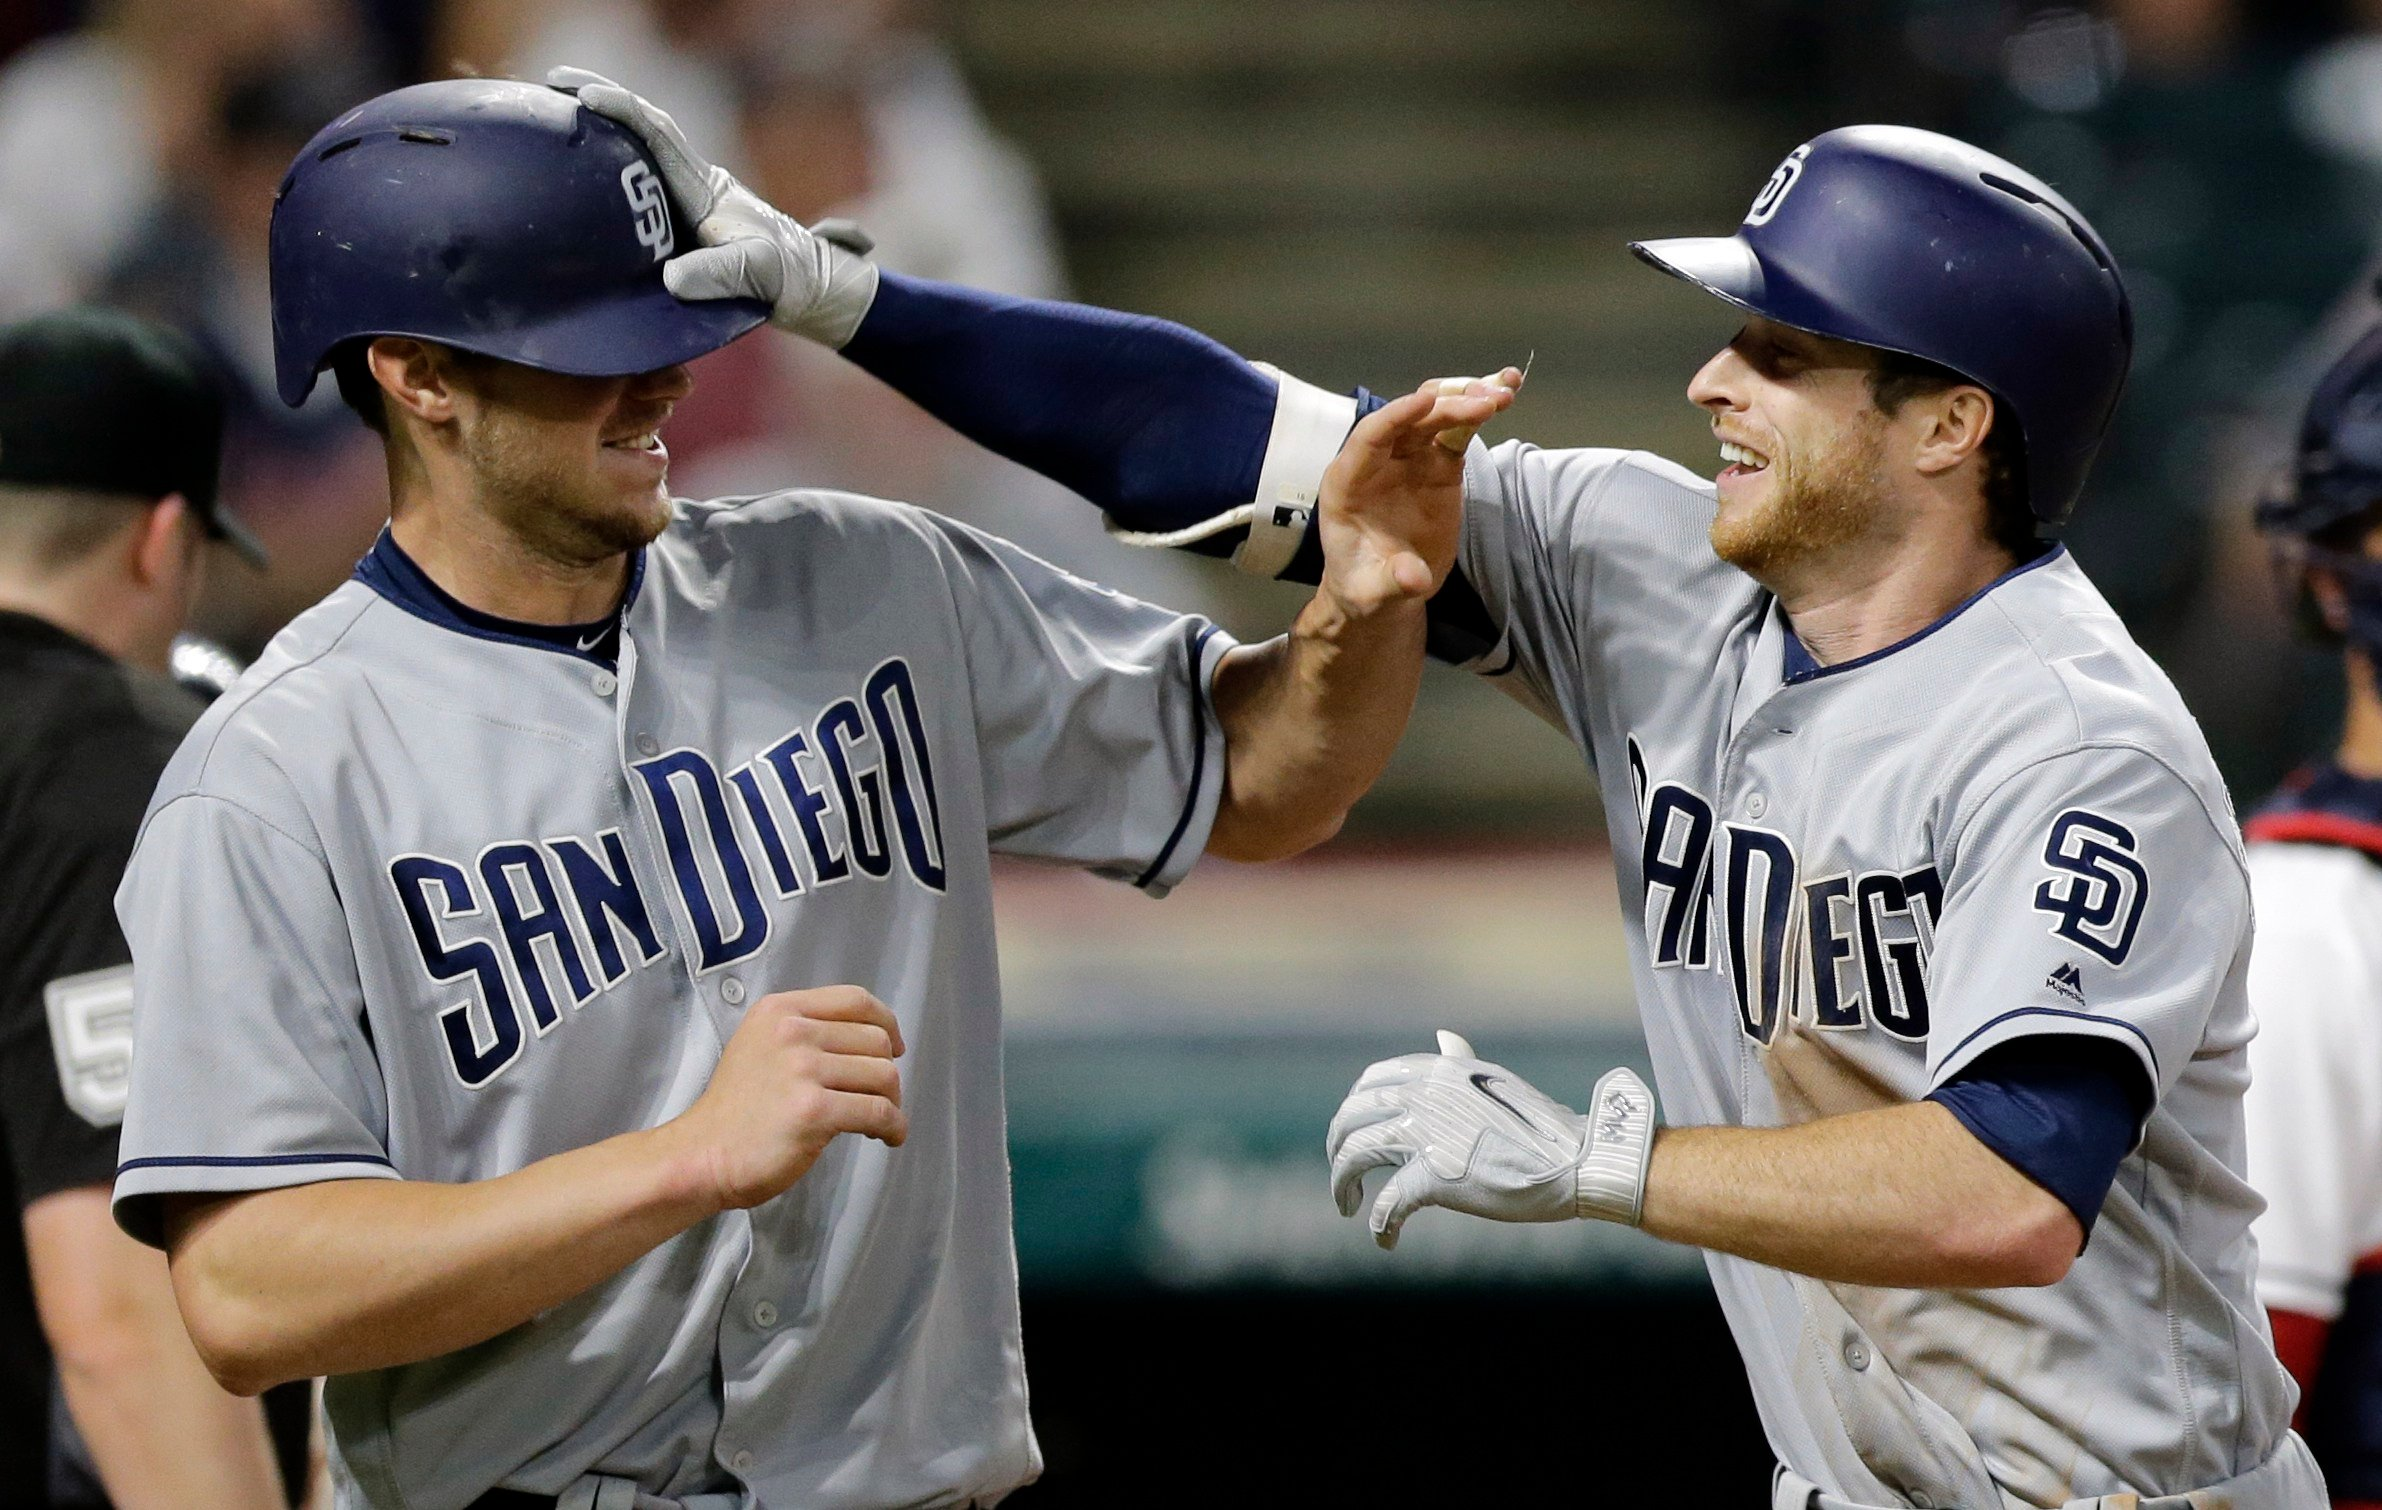 San Diego Padres' Cory Spangenberg, right, grabs Wil Myers's helmet after Spangenberg hit a two-run home run. Myers scored on the play. (AP Photo/Tony Dejak)